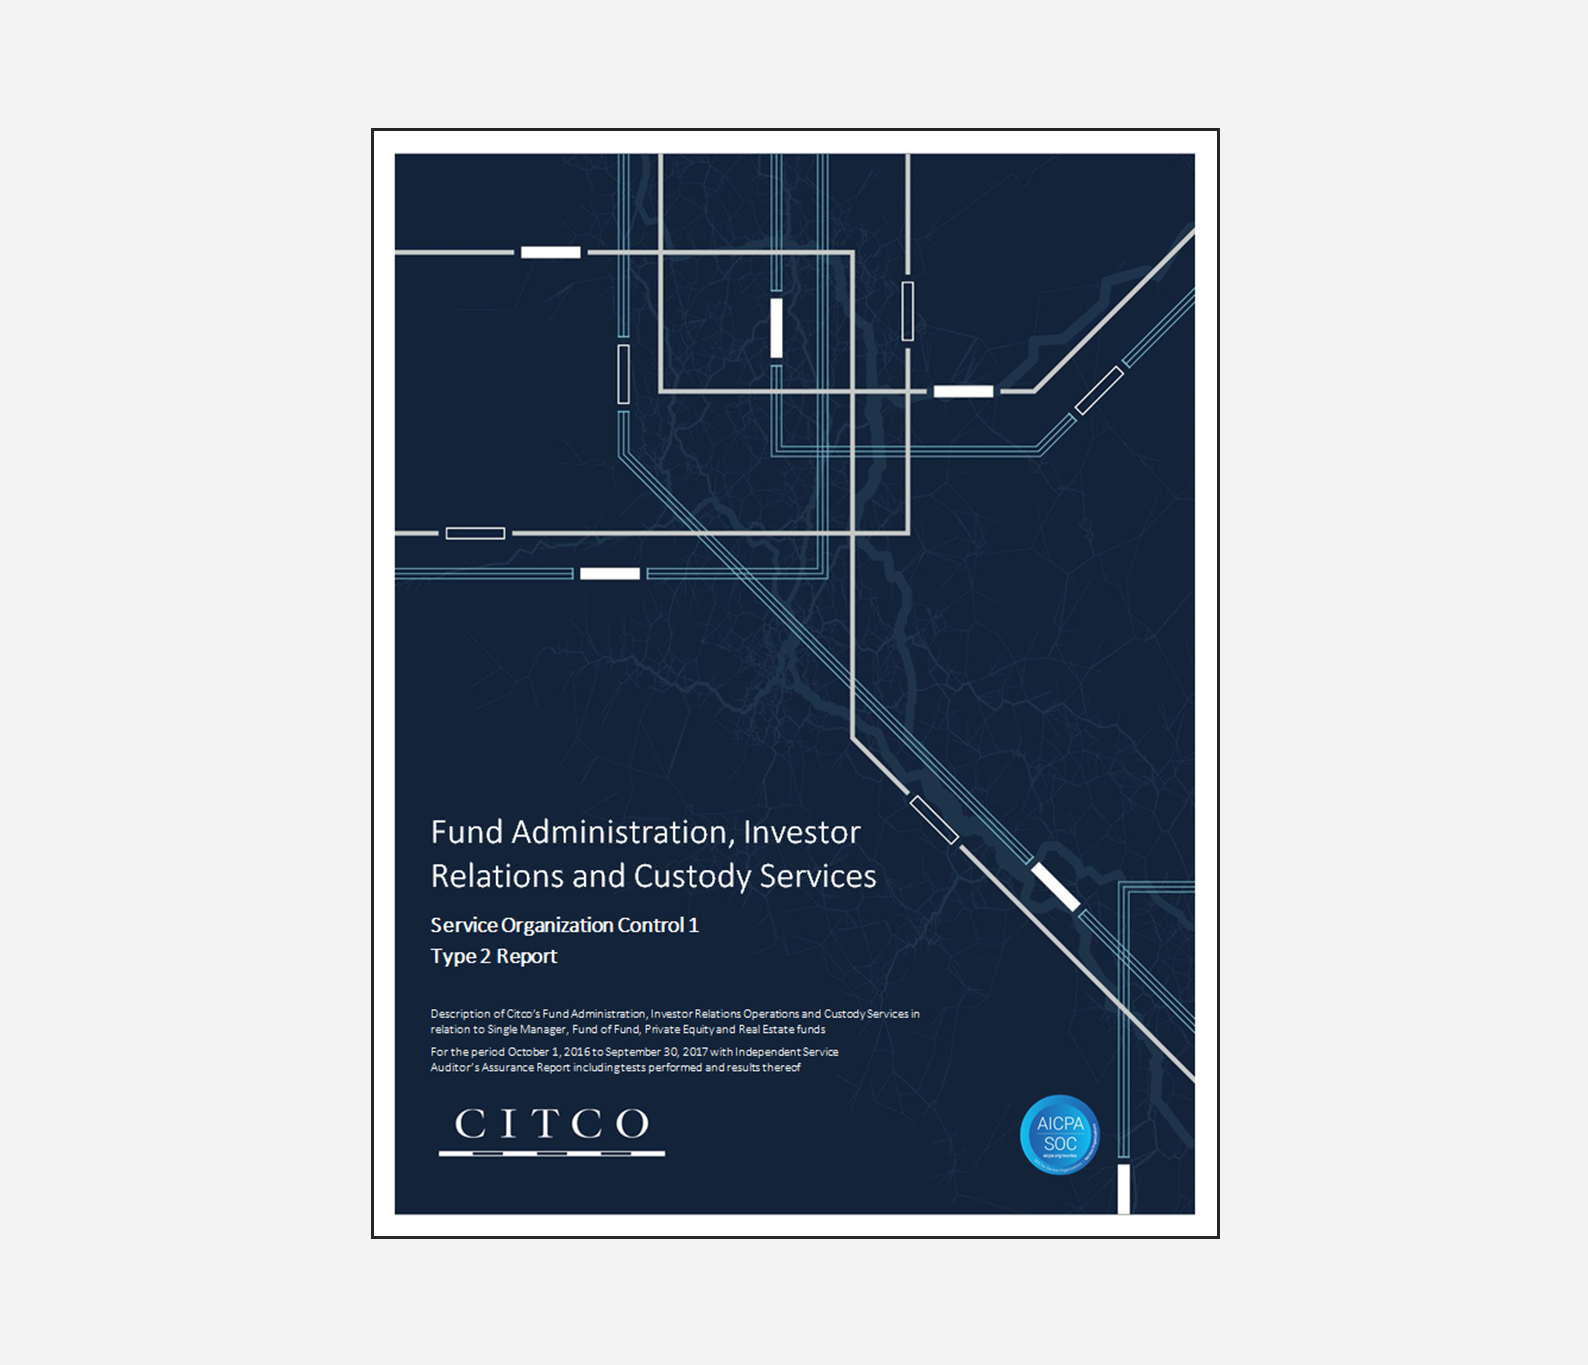 Citco announces completion of the Fund Services SOC 1 report for the 14th consecutive year